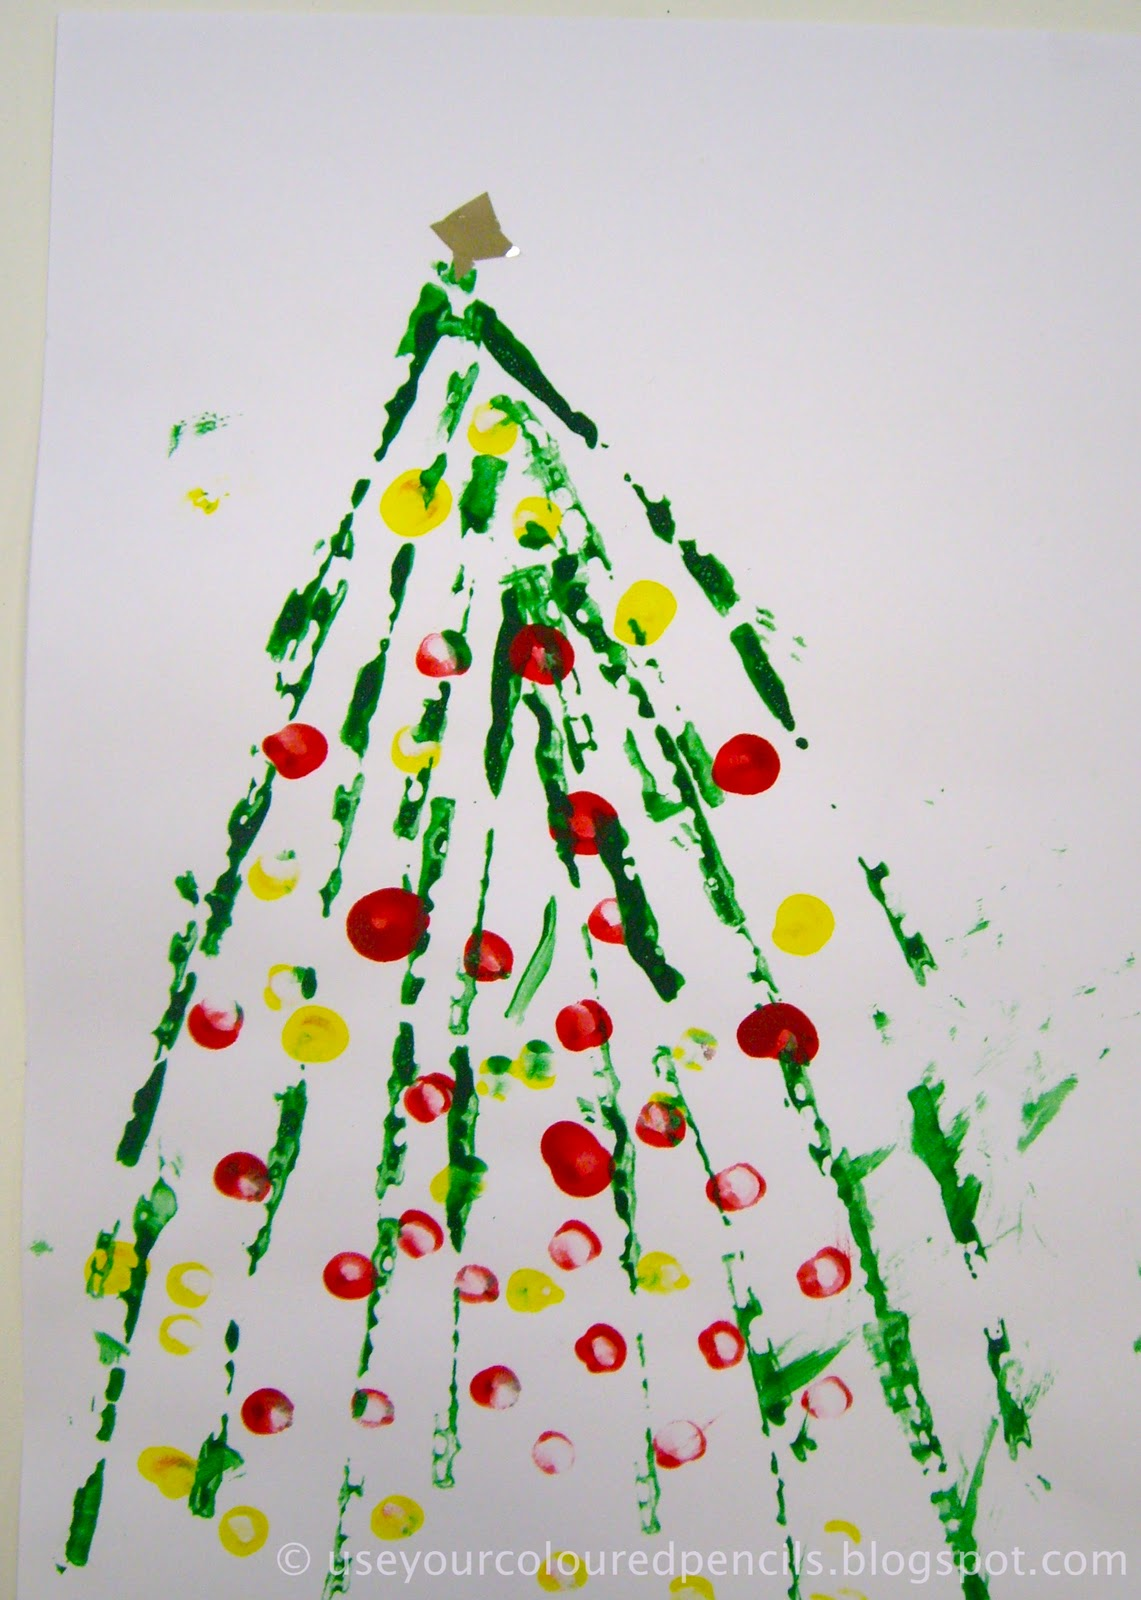 Use Your Coloured Pencils: Oh Christmas Tree